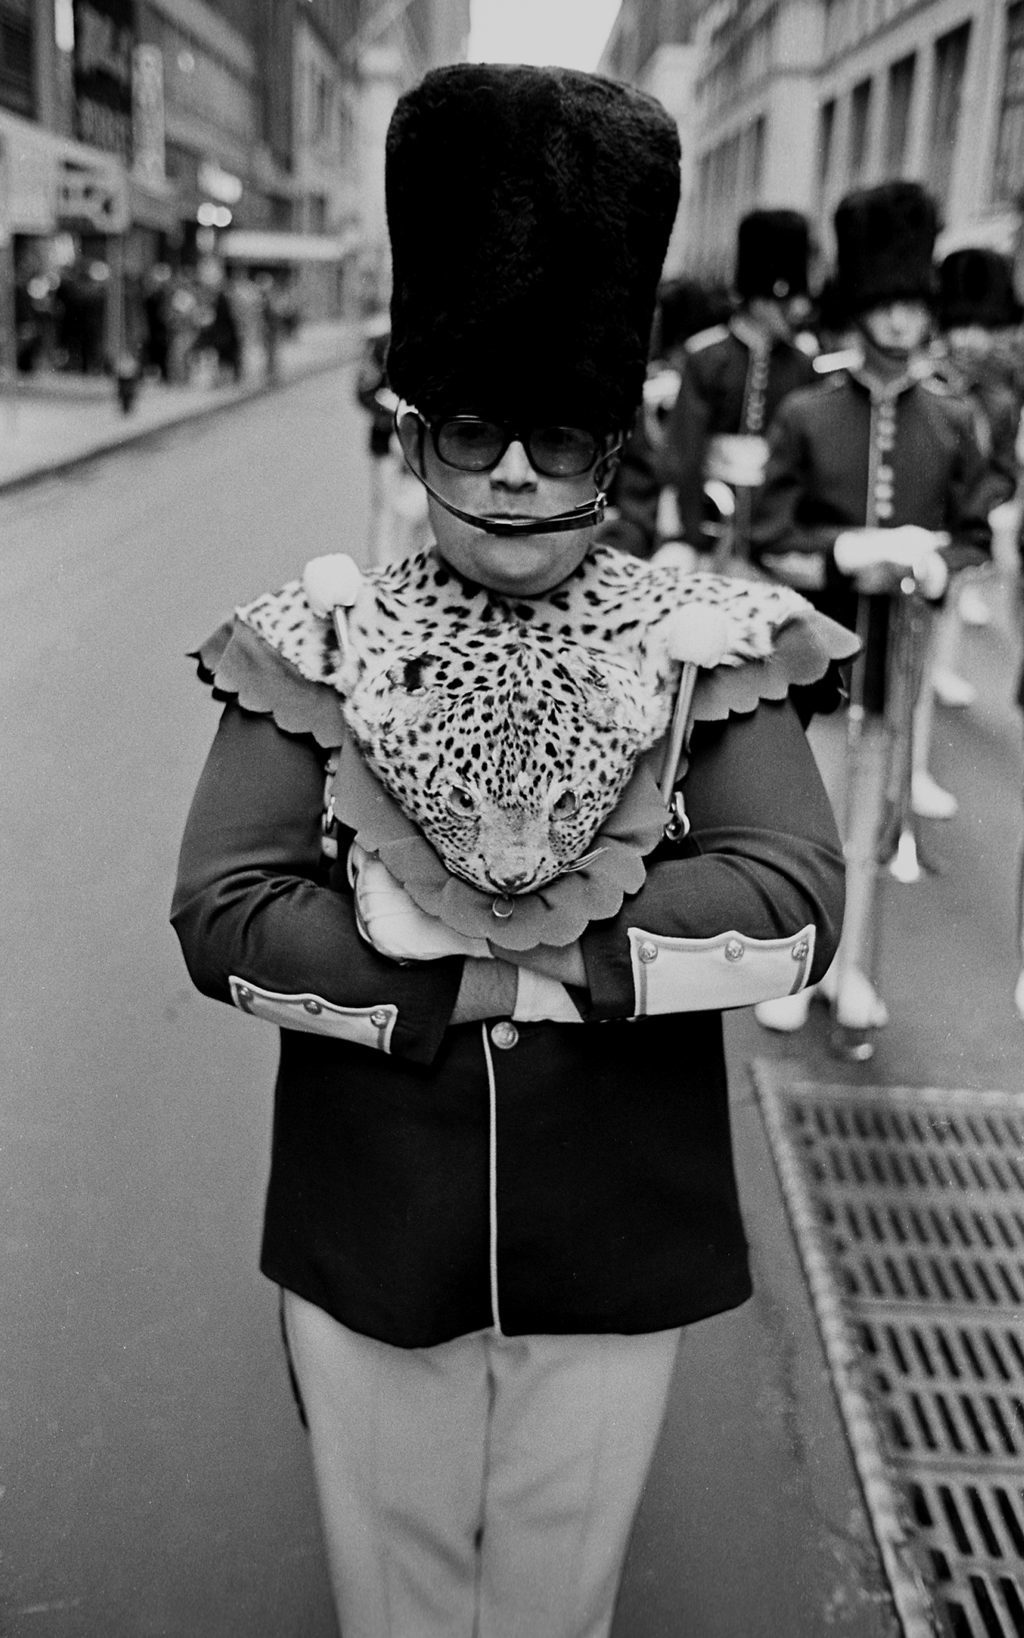 Tony Marciante Parade man 1974